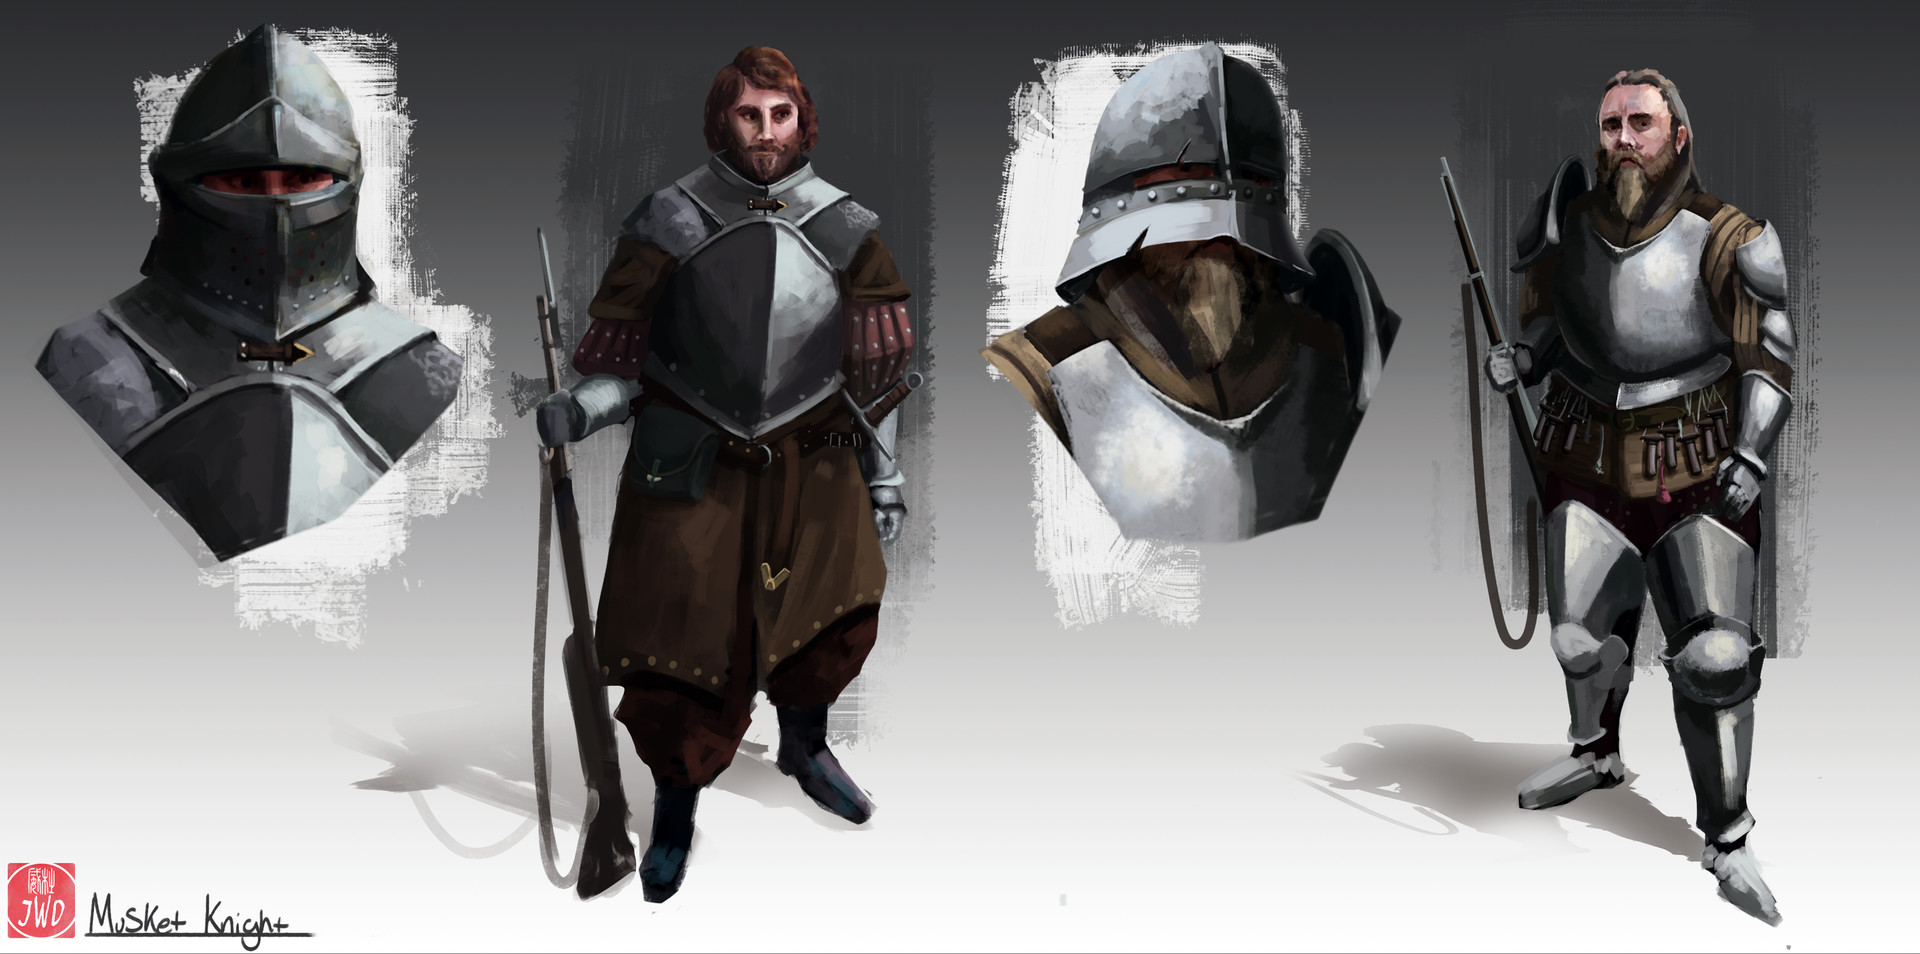 Jack dowell knight designs